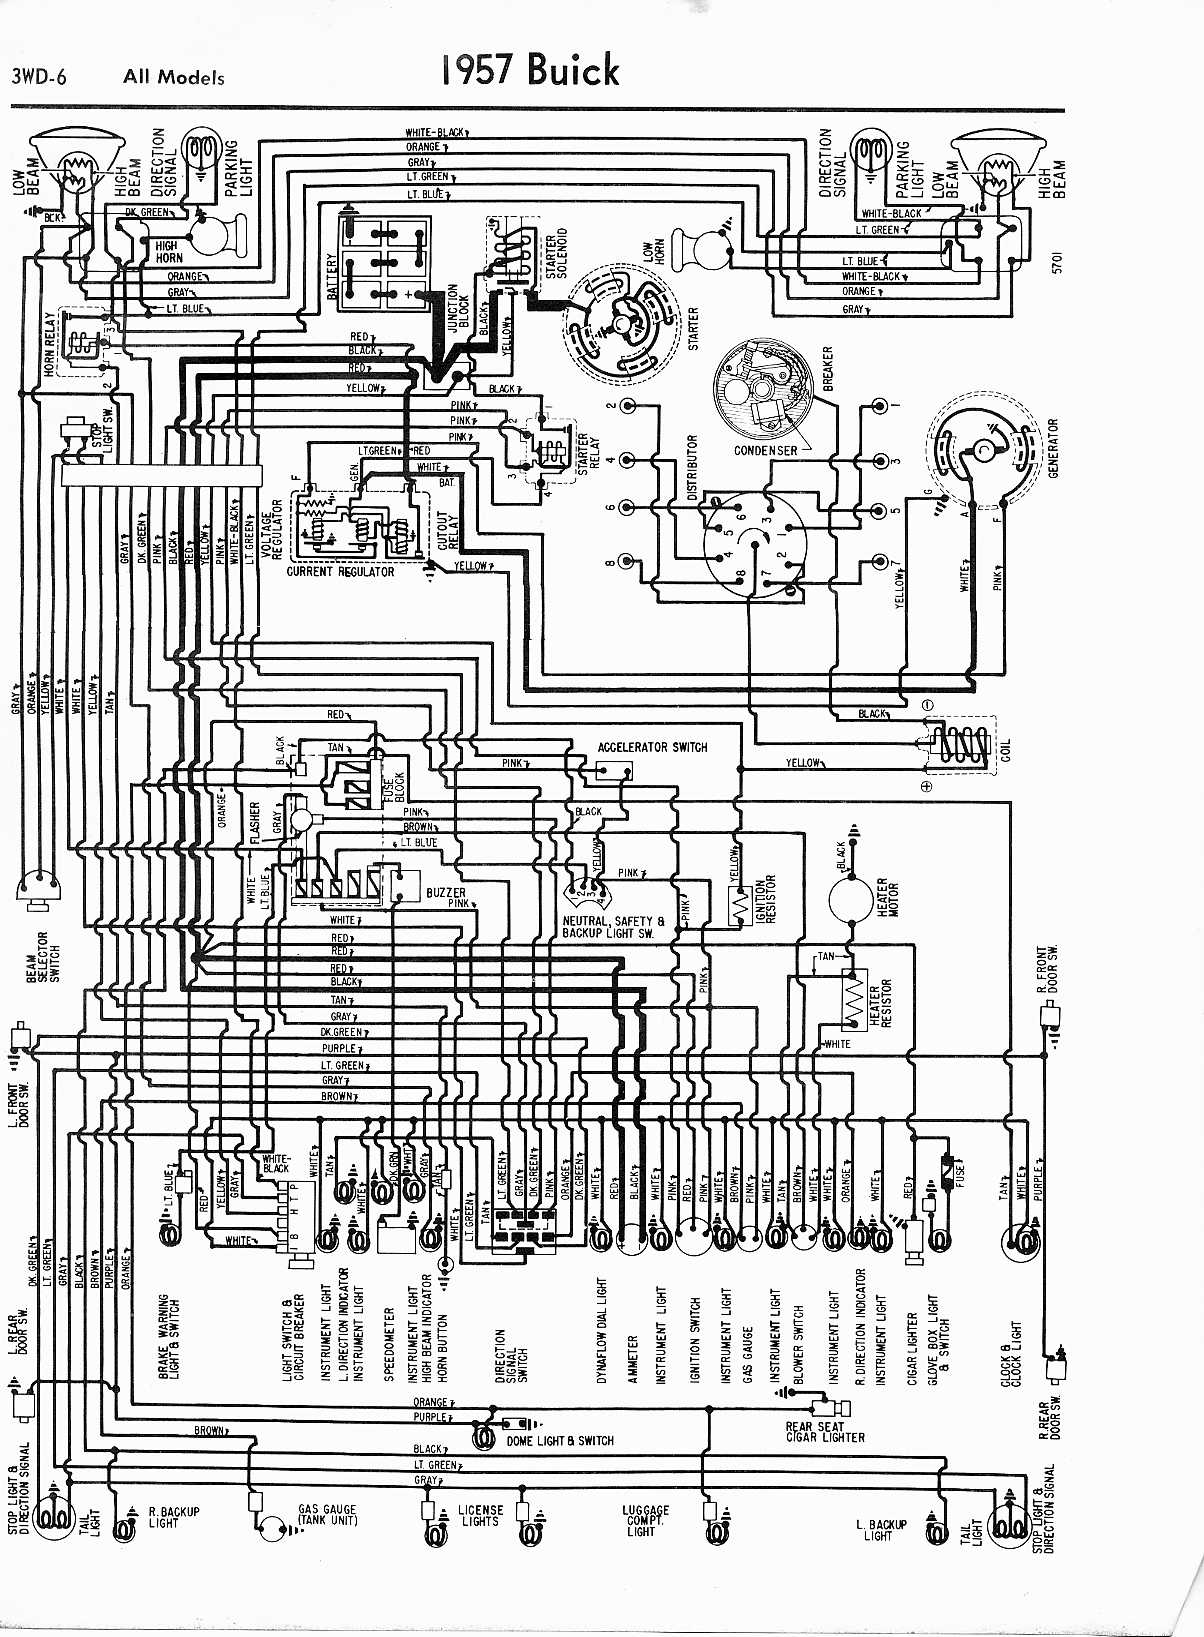 MWireBuic65_3WD 006 buick wiring diagrams 1957 1965 1972 Buick Skylark at reclaimingppi.co